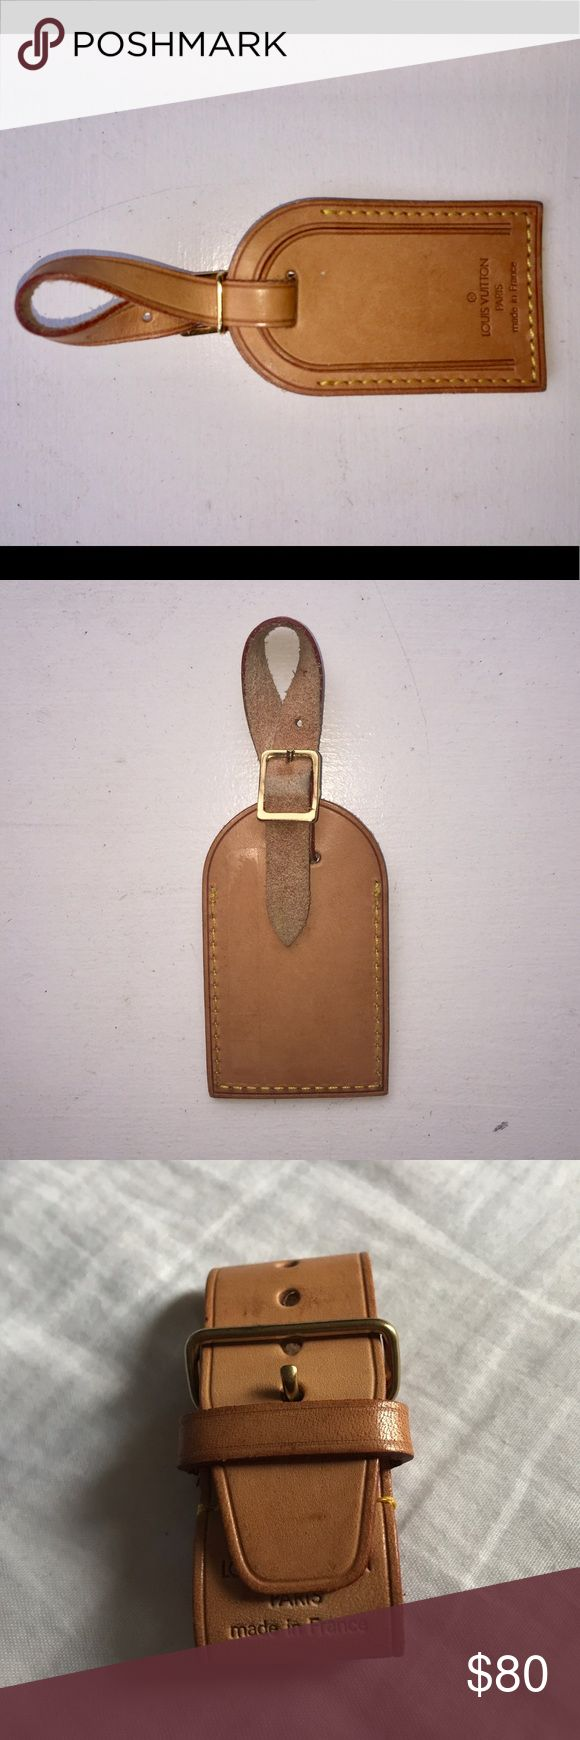 Louis Vuitton luggage tag Louis Vuitton authentic luggage tag nicely patina made in France Louis Vuitton Accessories